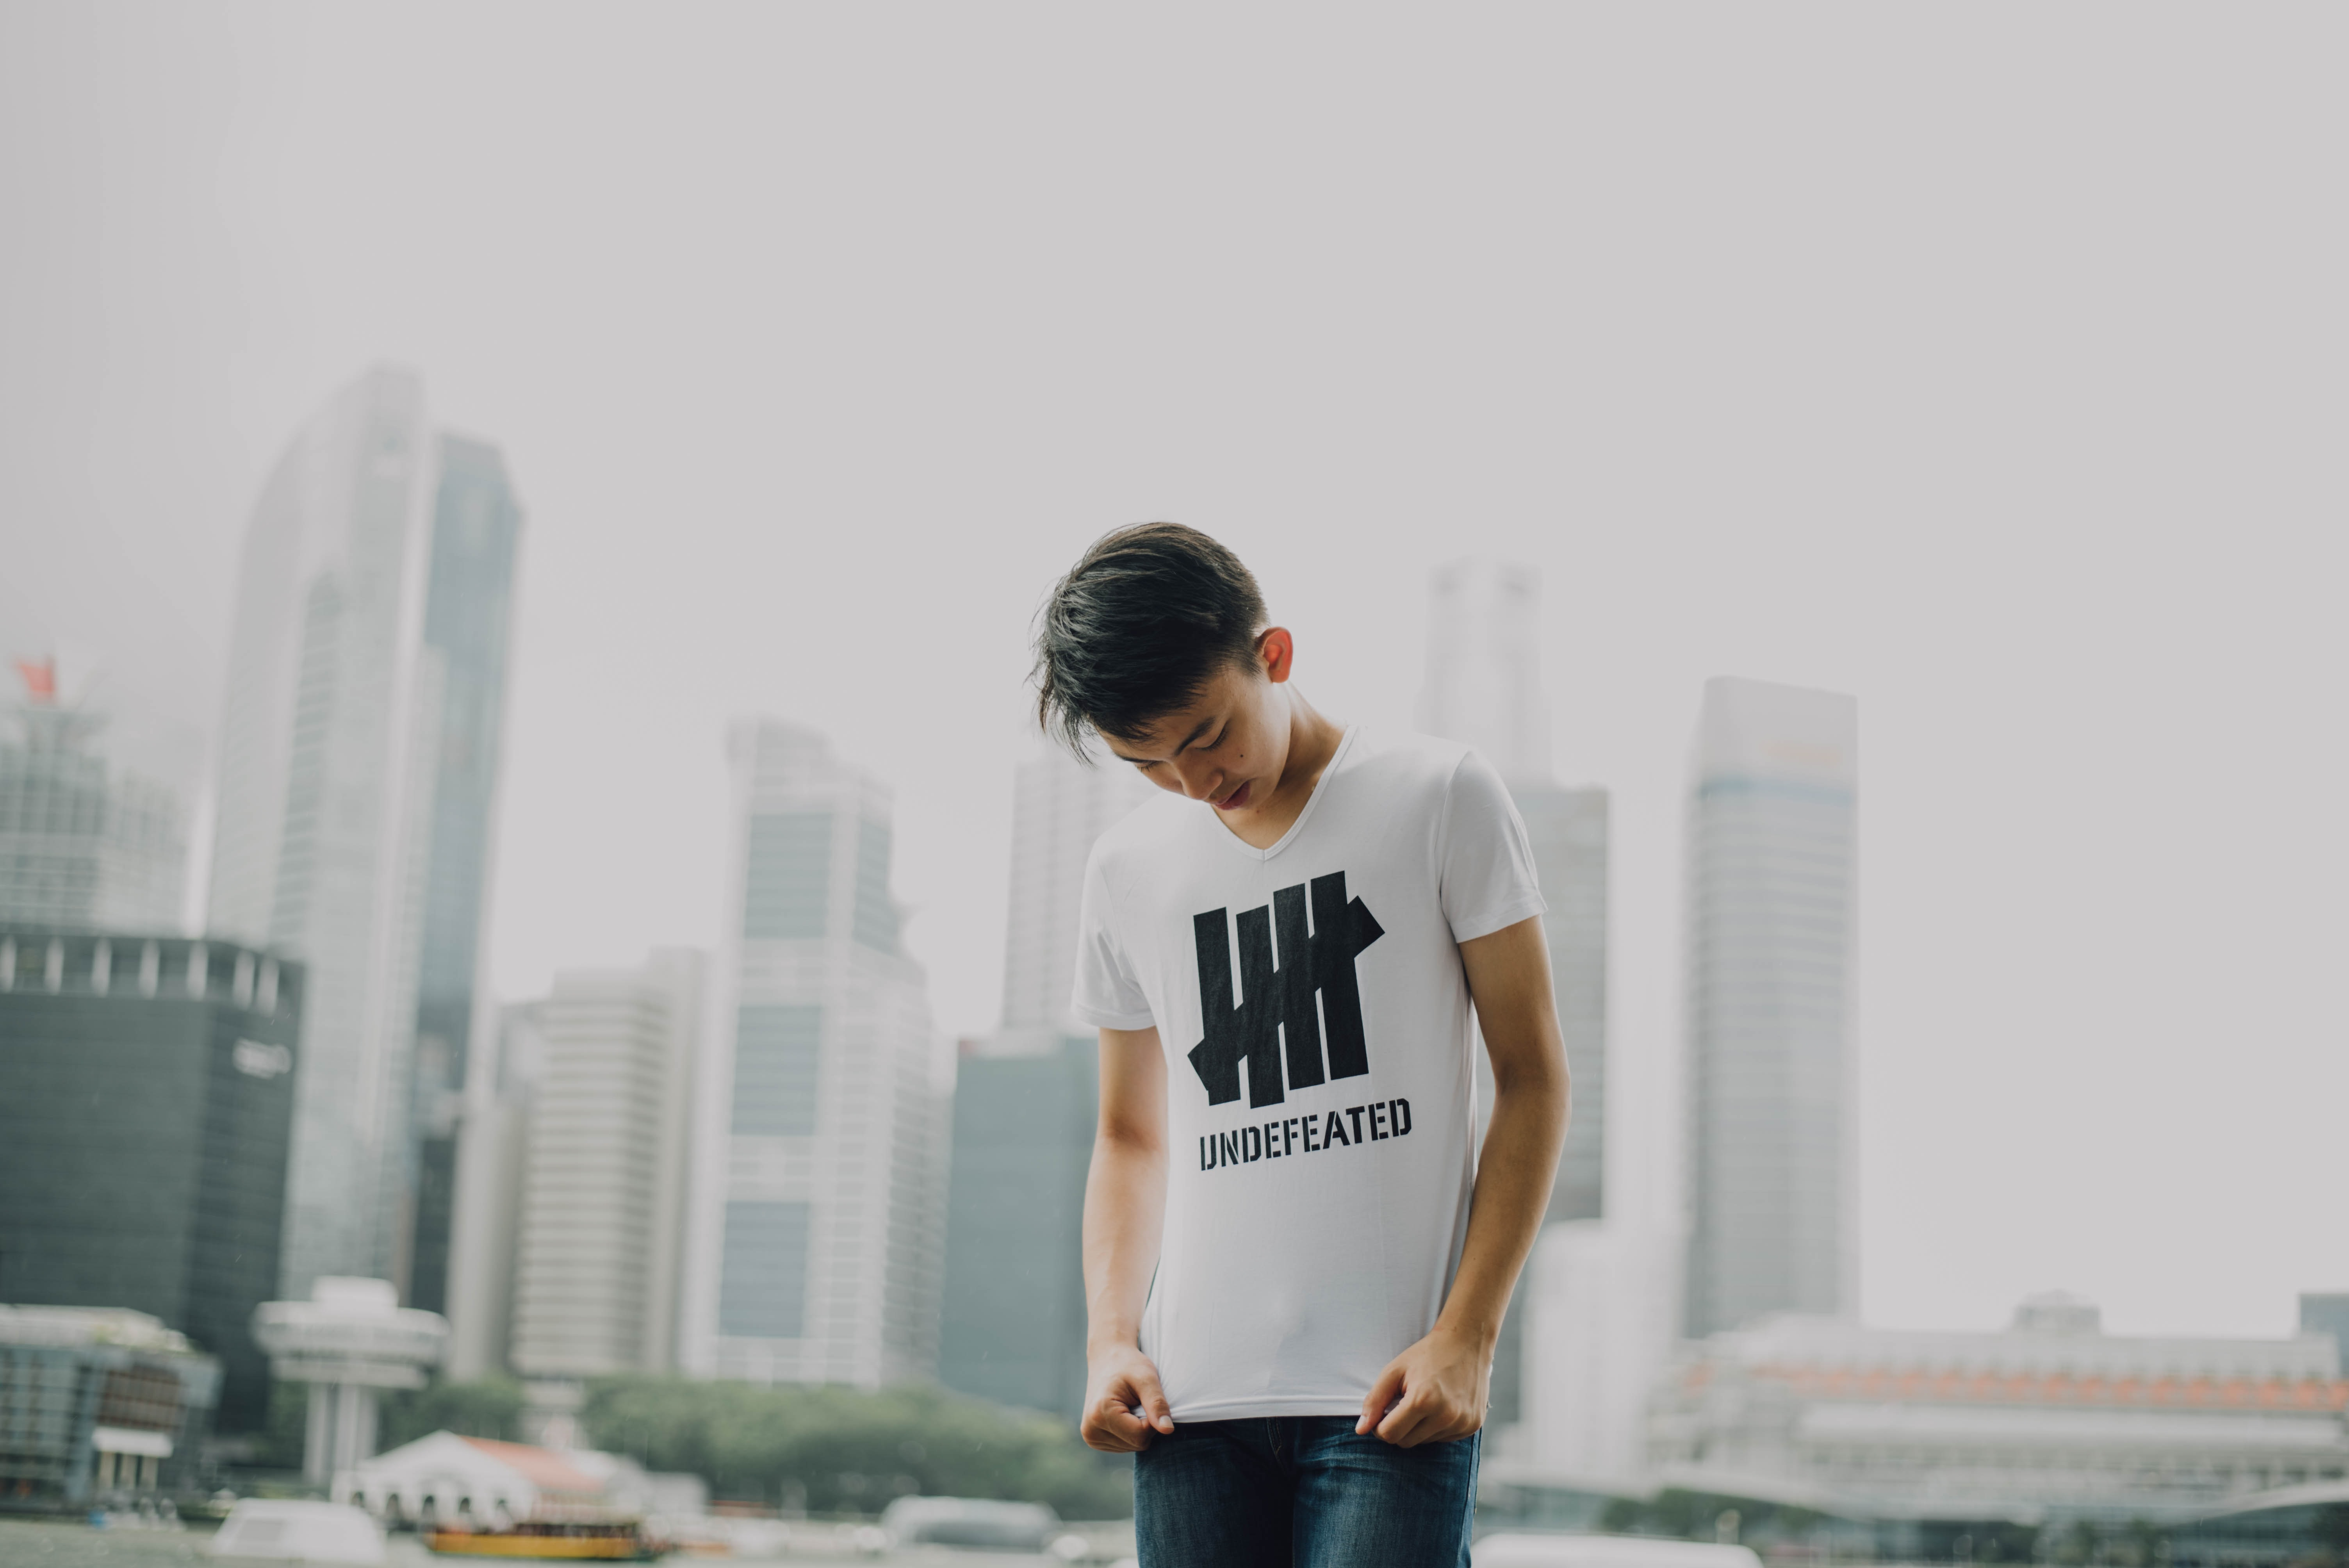 """A person in a white t-shirt reading """"UNDEFEATED"""" stands before an urban skyline"""